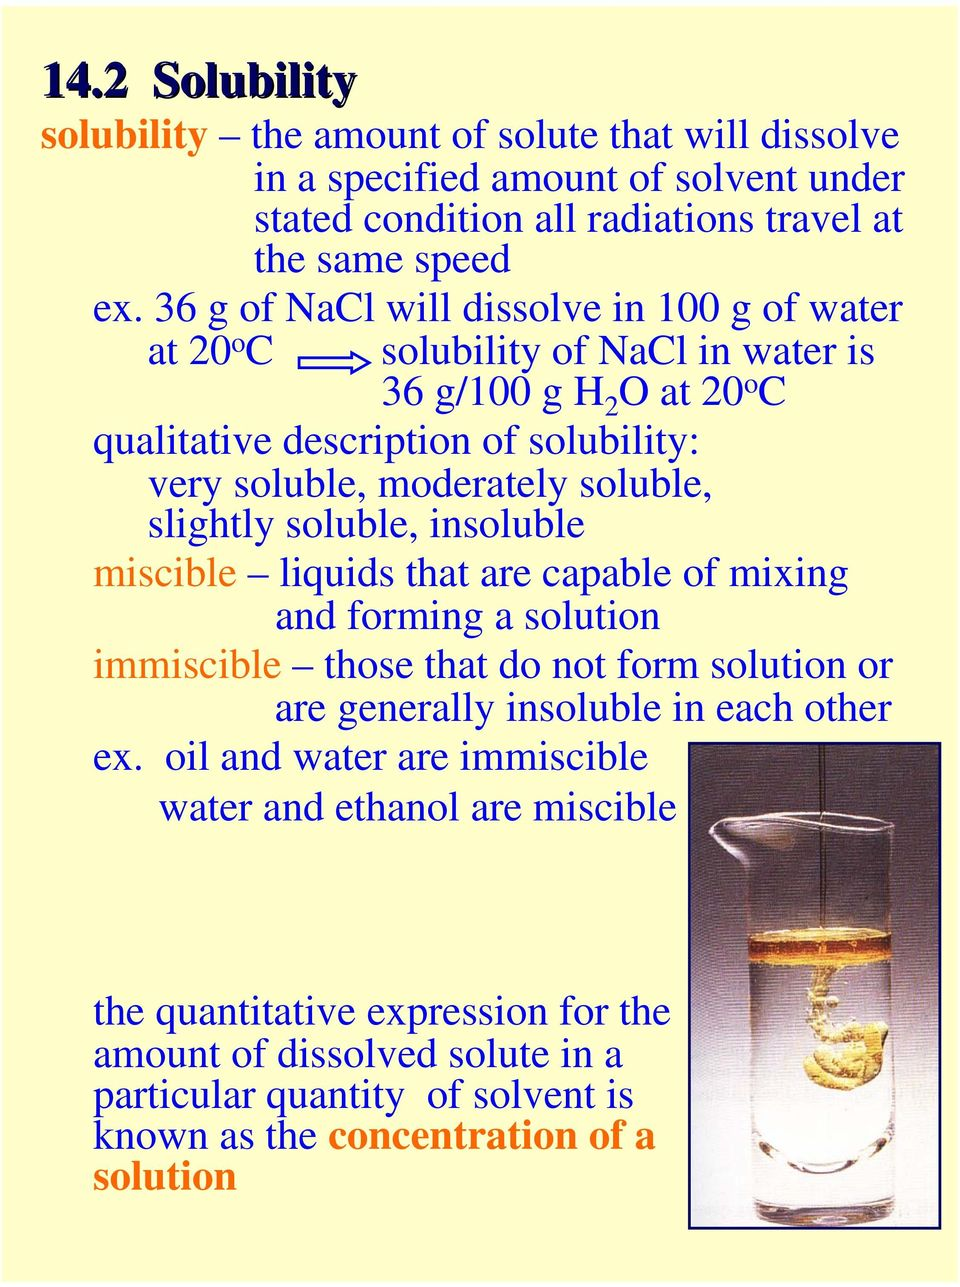 soluble, slightly soluble, insoluble miscible liquids that are capable of mixing and forming a solution immiscible those that do not form solution or are generally insoluble in each